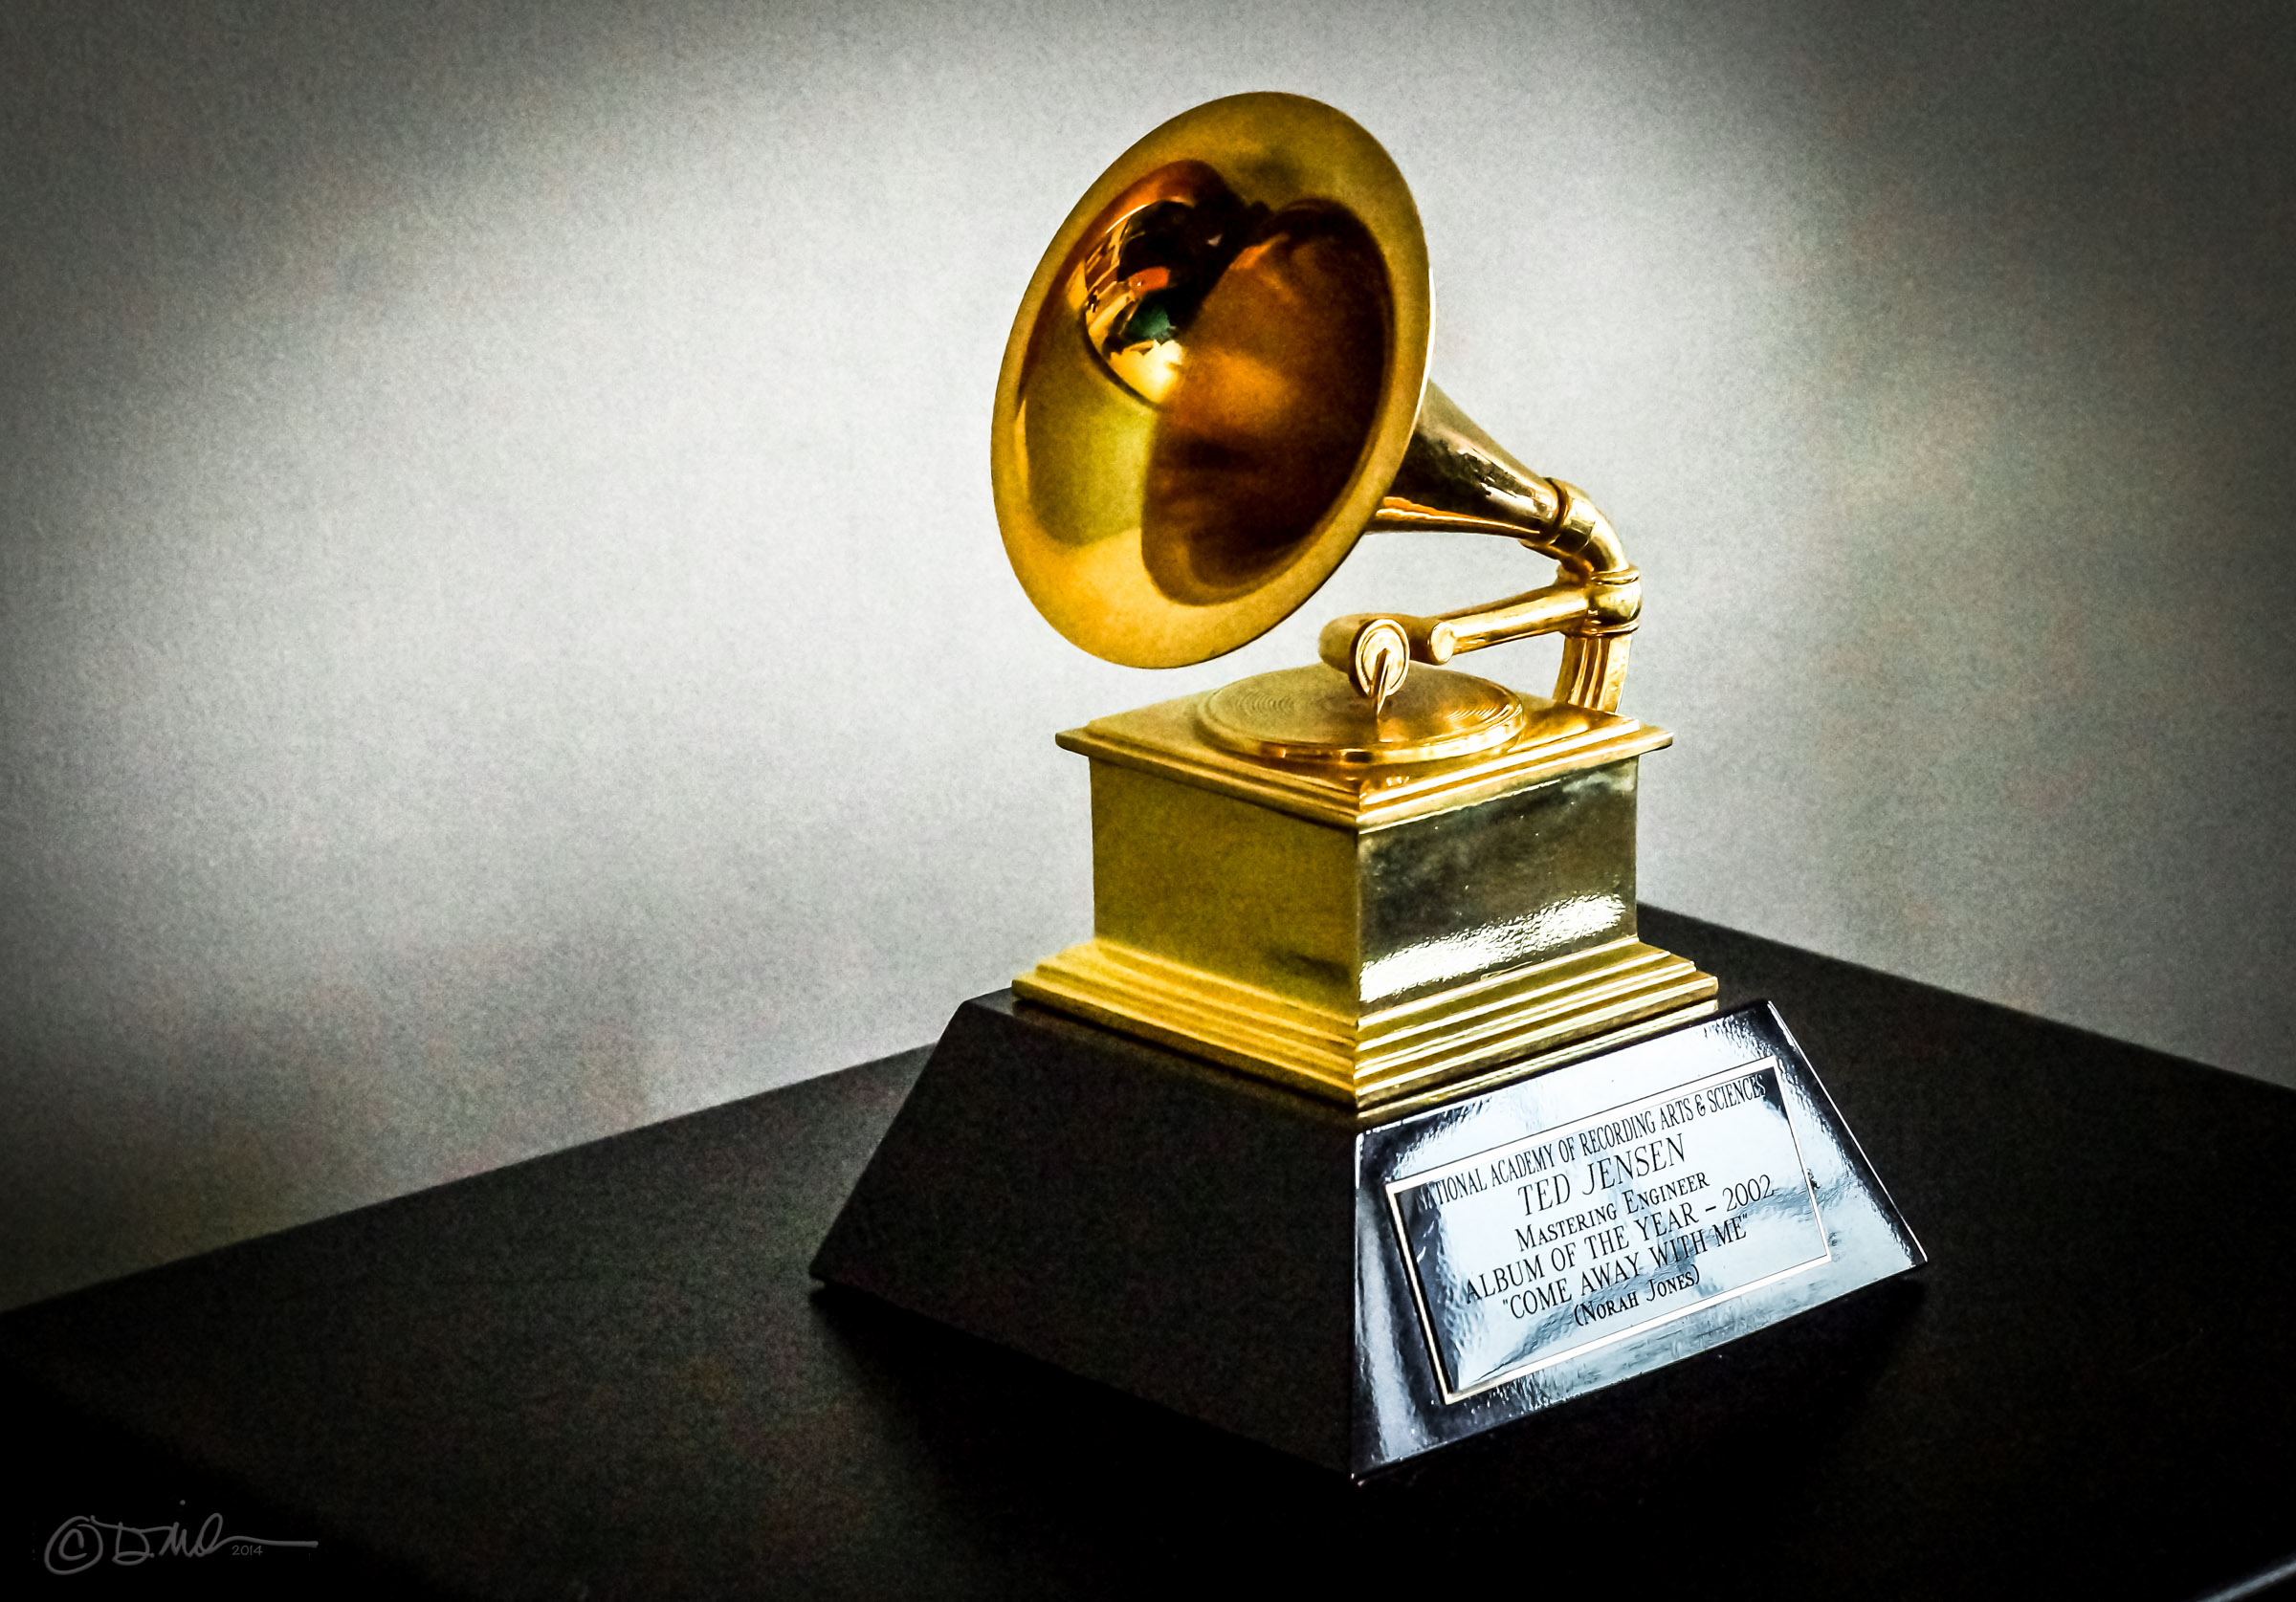 grammy by dmileson on Wikimedia Commons